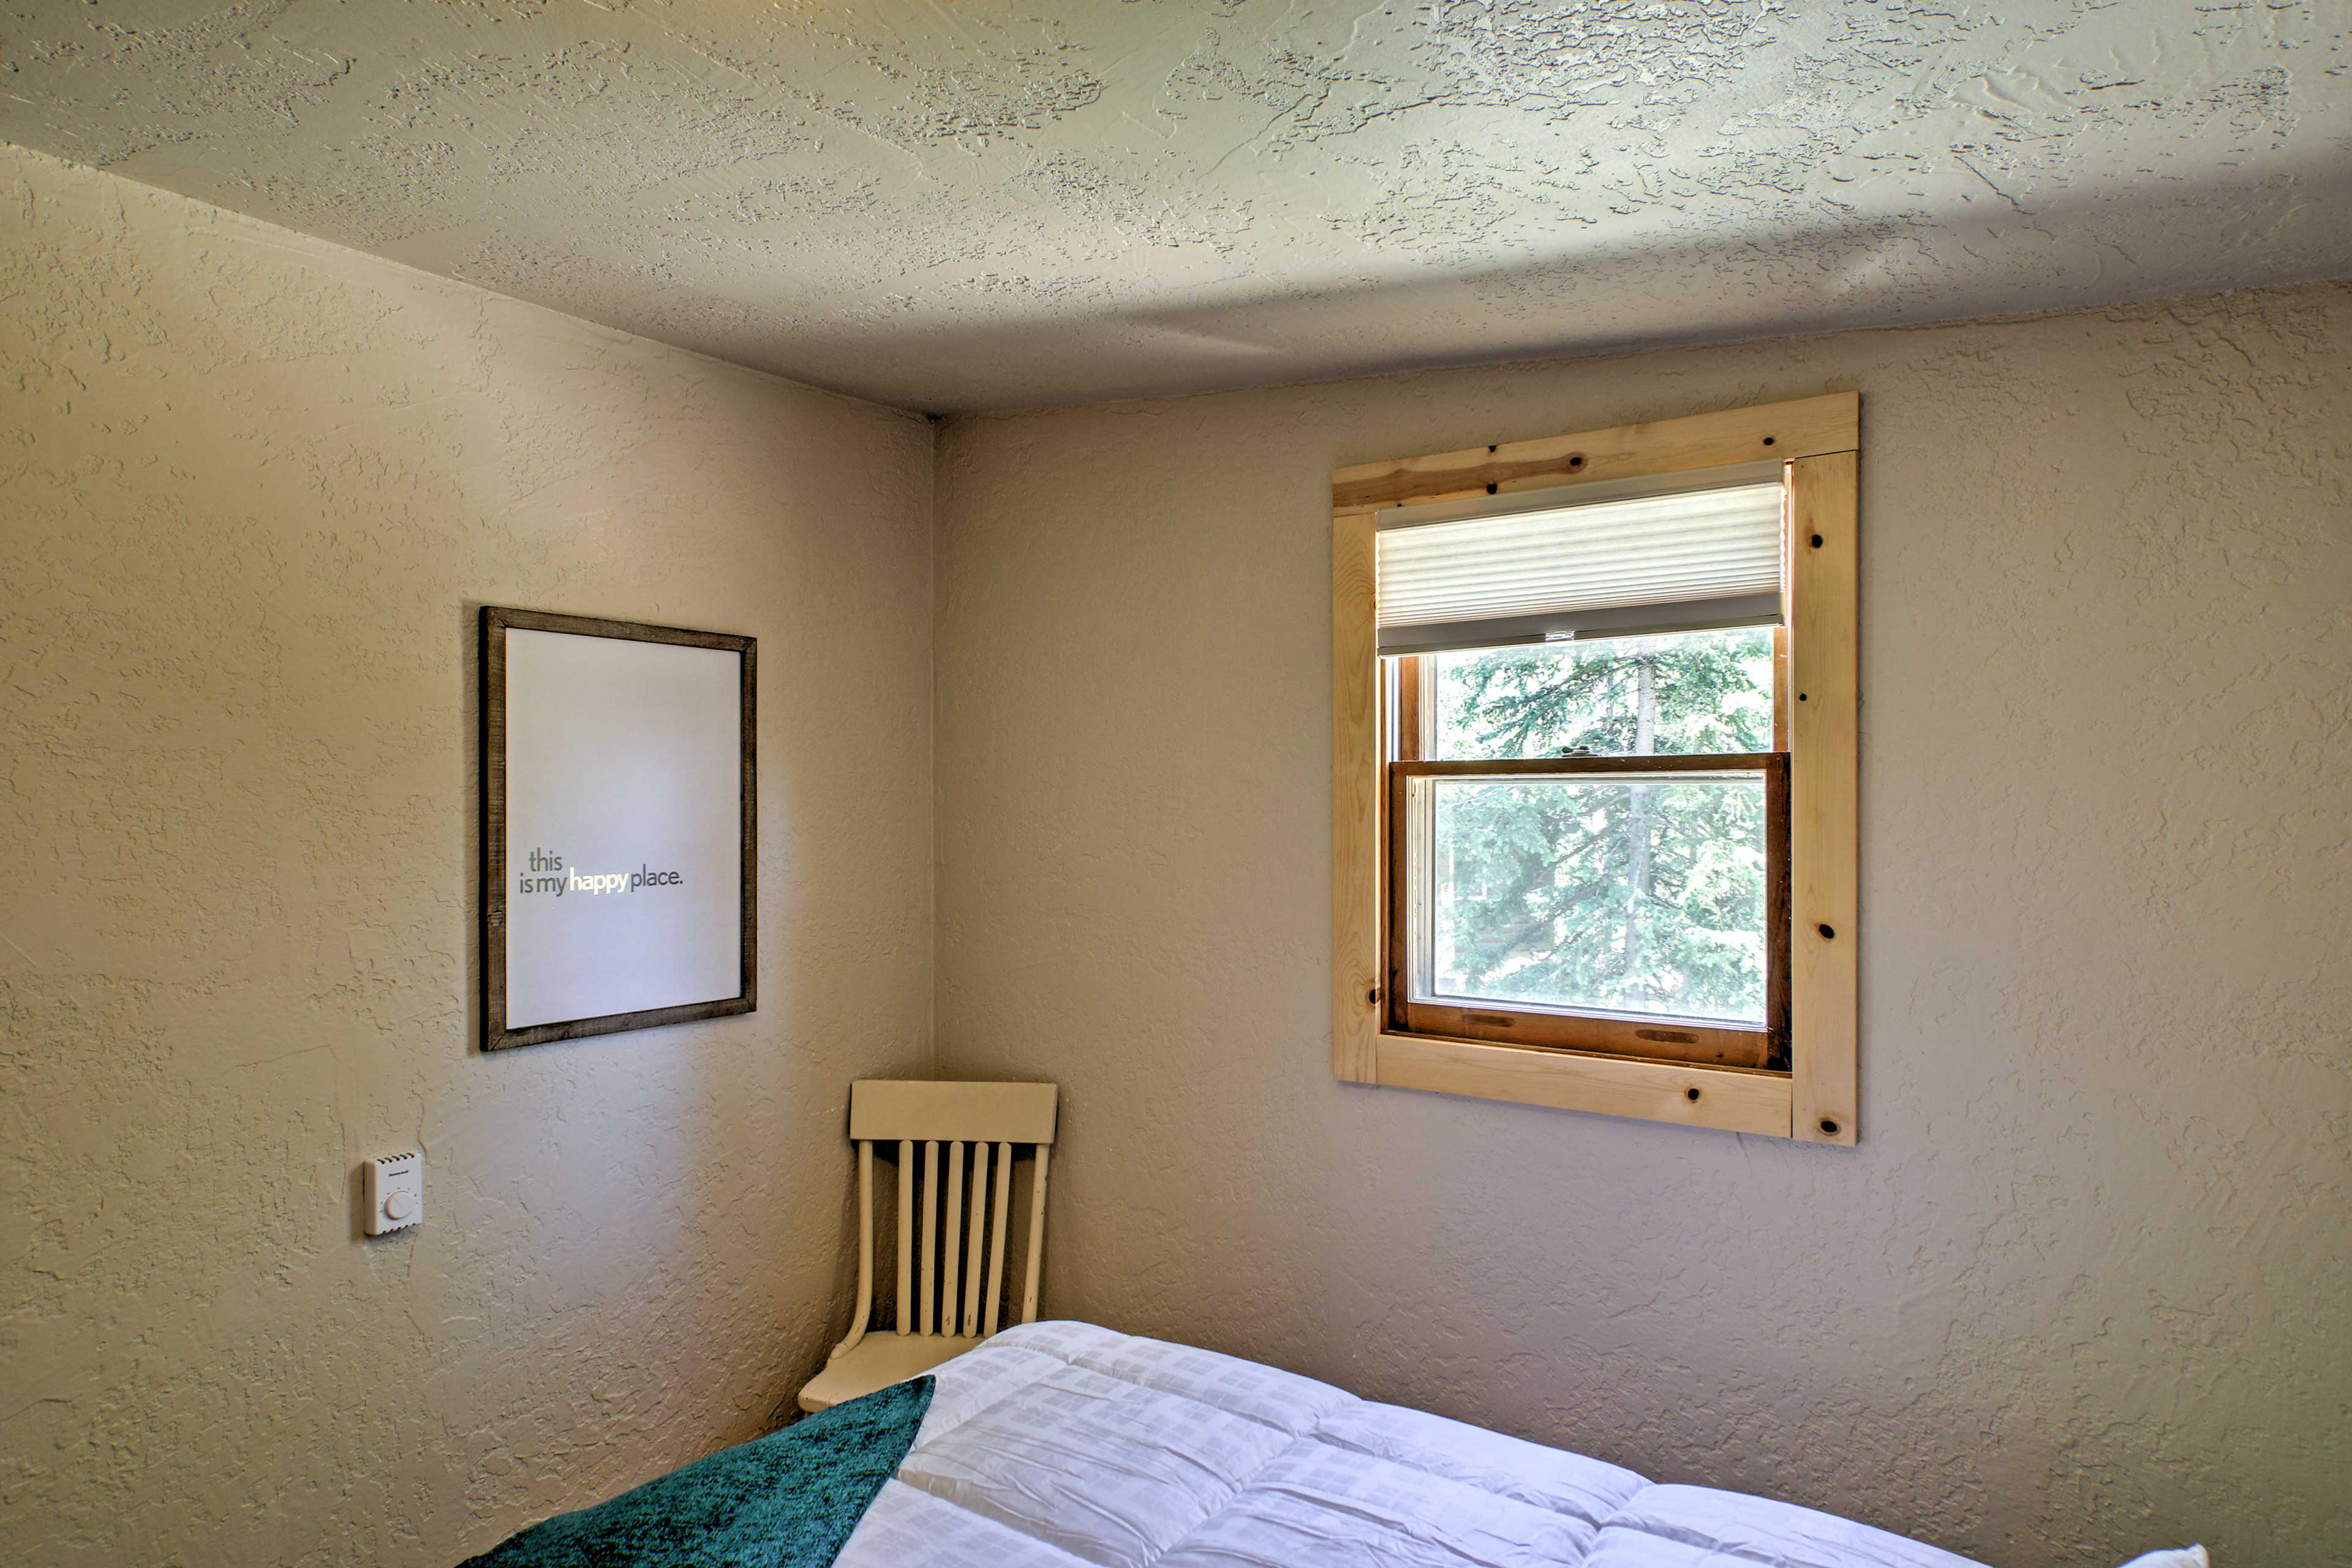 Natural light pours inside from the windows.